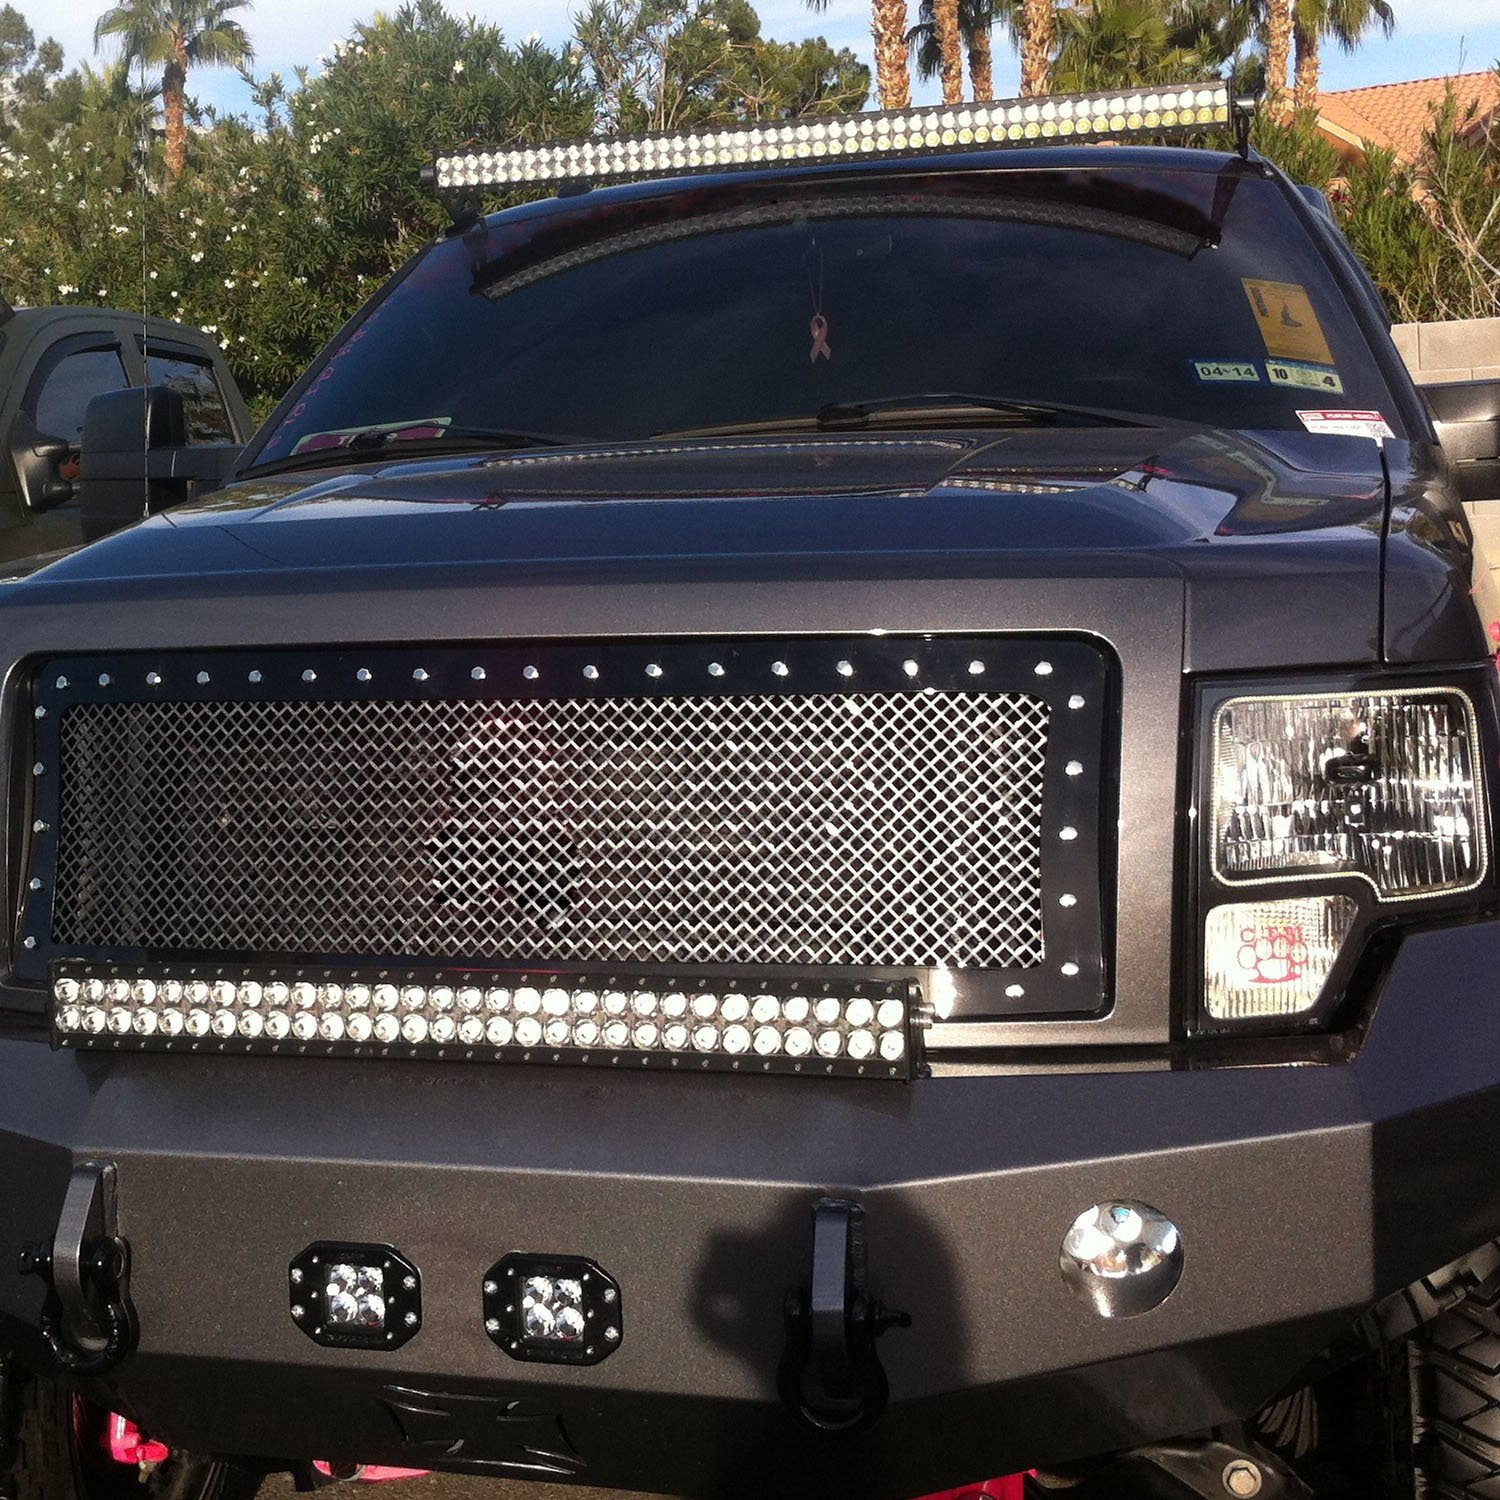 Truck LED Light Bar Jeep Northpole Light 32 180W Waterproof Spot Flood Combo LED Light Bar SUV Northpole Light 32 180W Waterproof Spot Flood Combo LED Light Bar ATV Jeep Off-road Light Bar Car LED Fog Lights with Mounting Bracket for Off-road